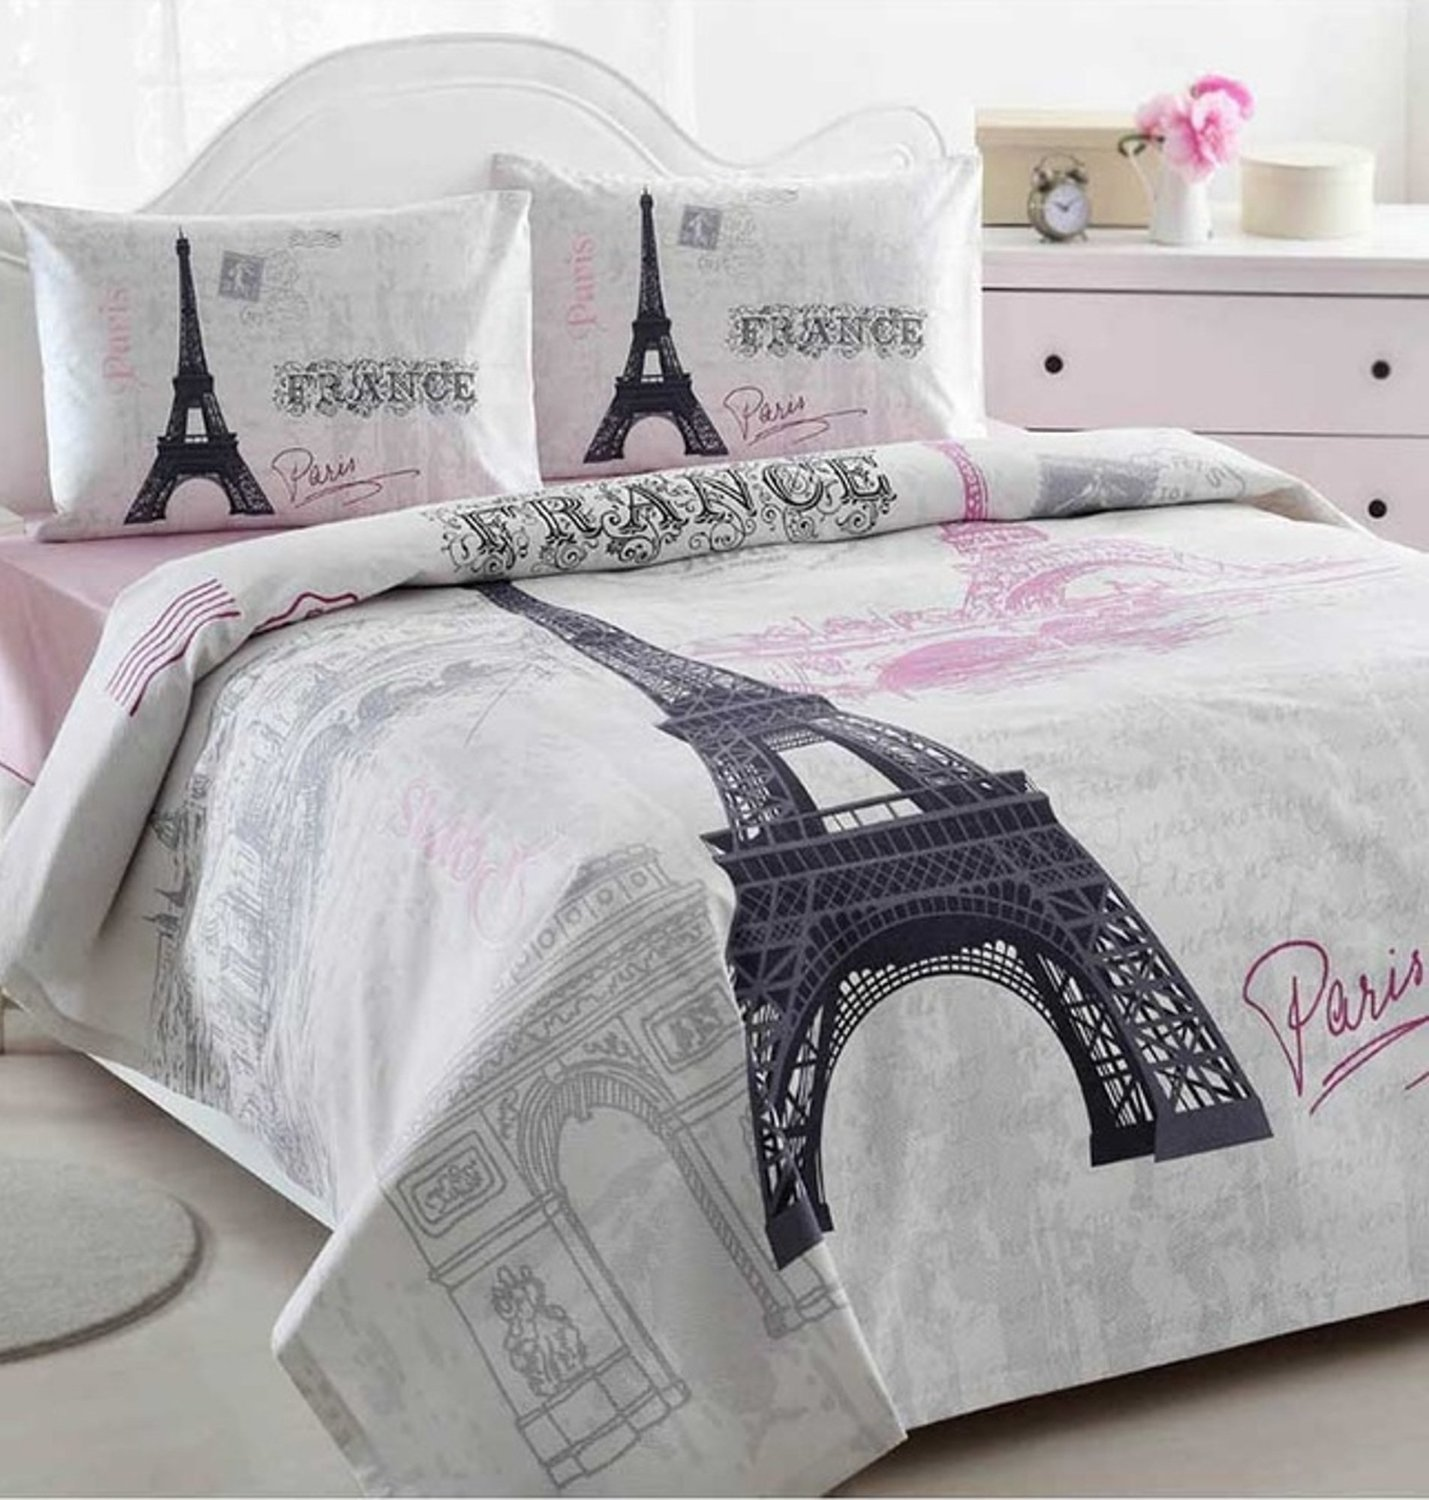 52f0fbb4e12ebc Istanbul Home Collection Paris Eiffel Tower Themed Ranforce 100% Turkish  Cotton Full Queen Size Quilt